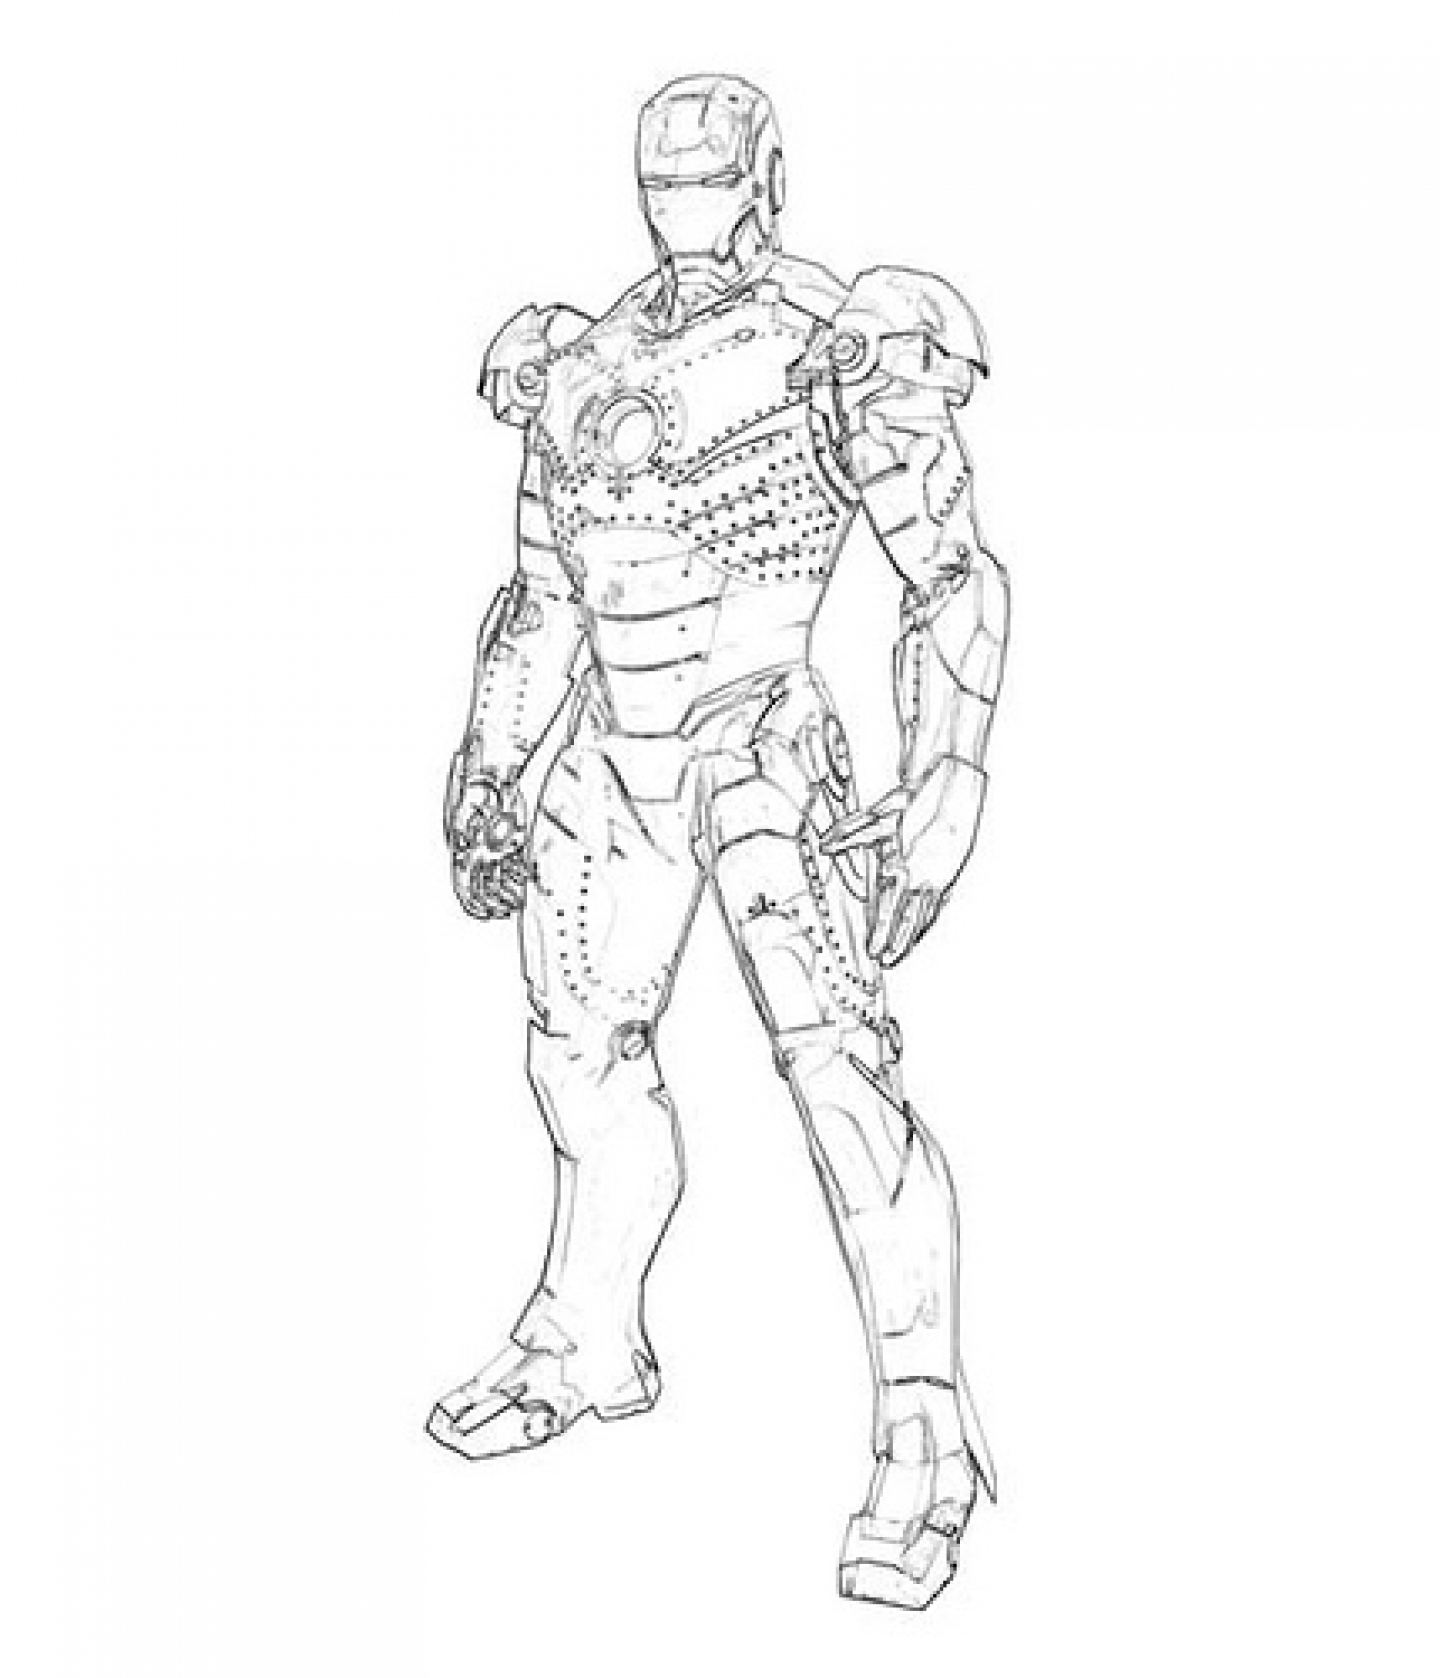 iron man suit drawing at getdrawings com free for personal use